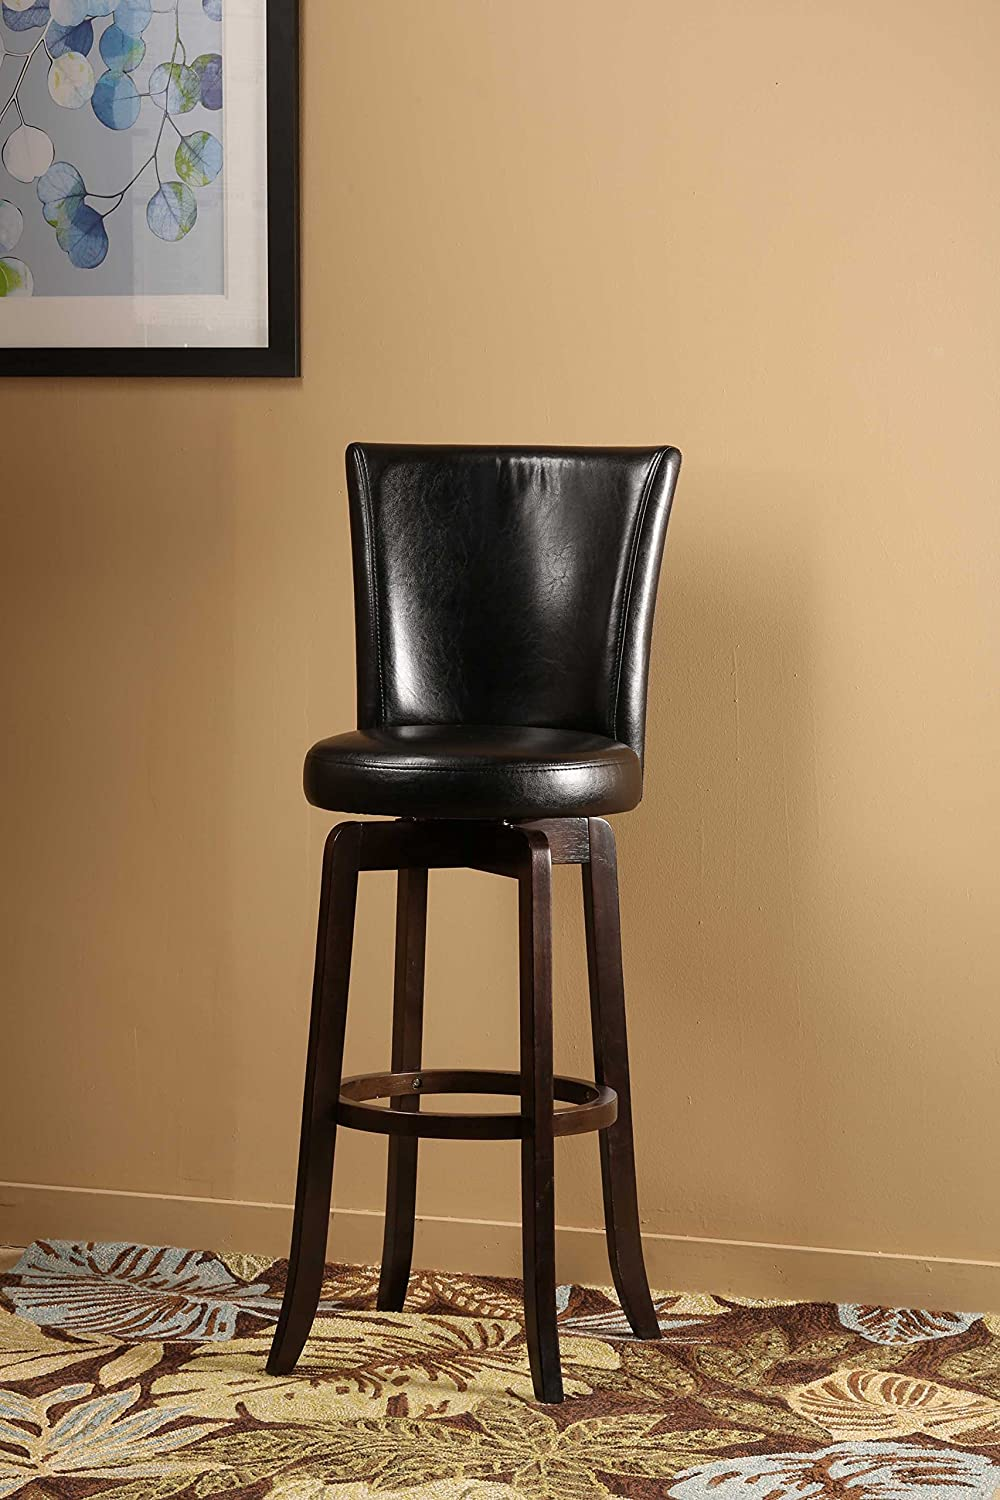 Amazon.com Hillsdale 4951-830 Copenhagen Swivel Bar Stool Black Leather Kitchen u0026 Dining & Amazon.com: Hillsdale 4951-830 Copenhagen Swivel Bar Stool Black ... islam-shia.org